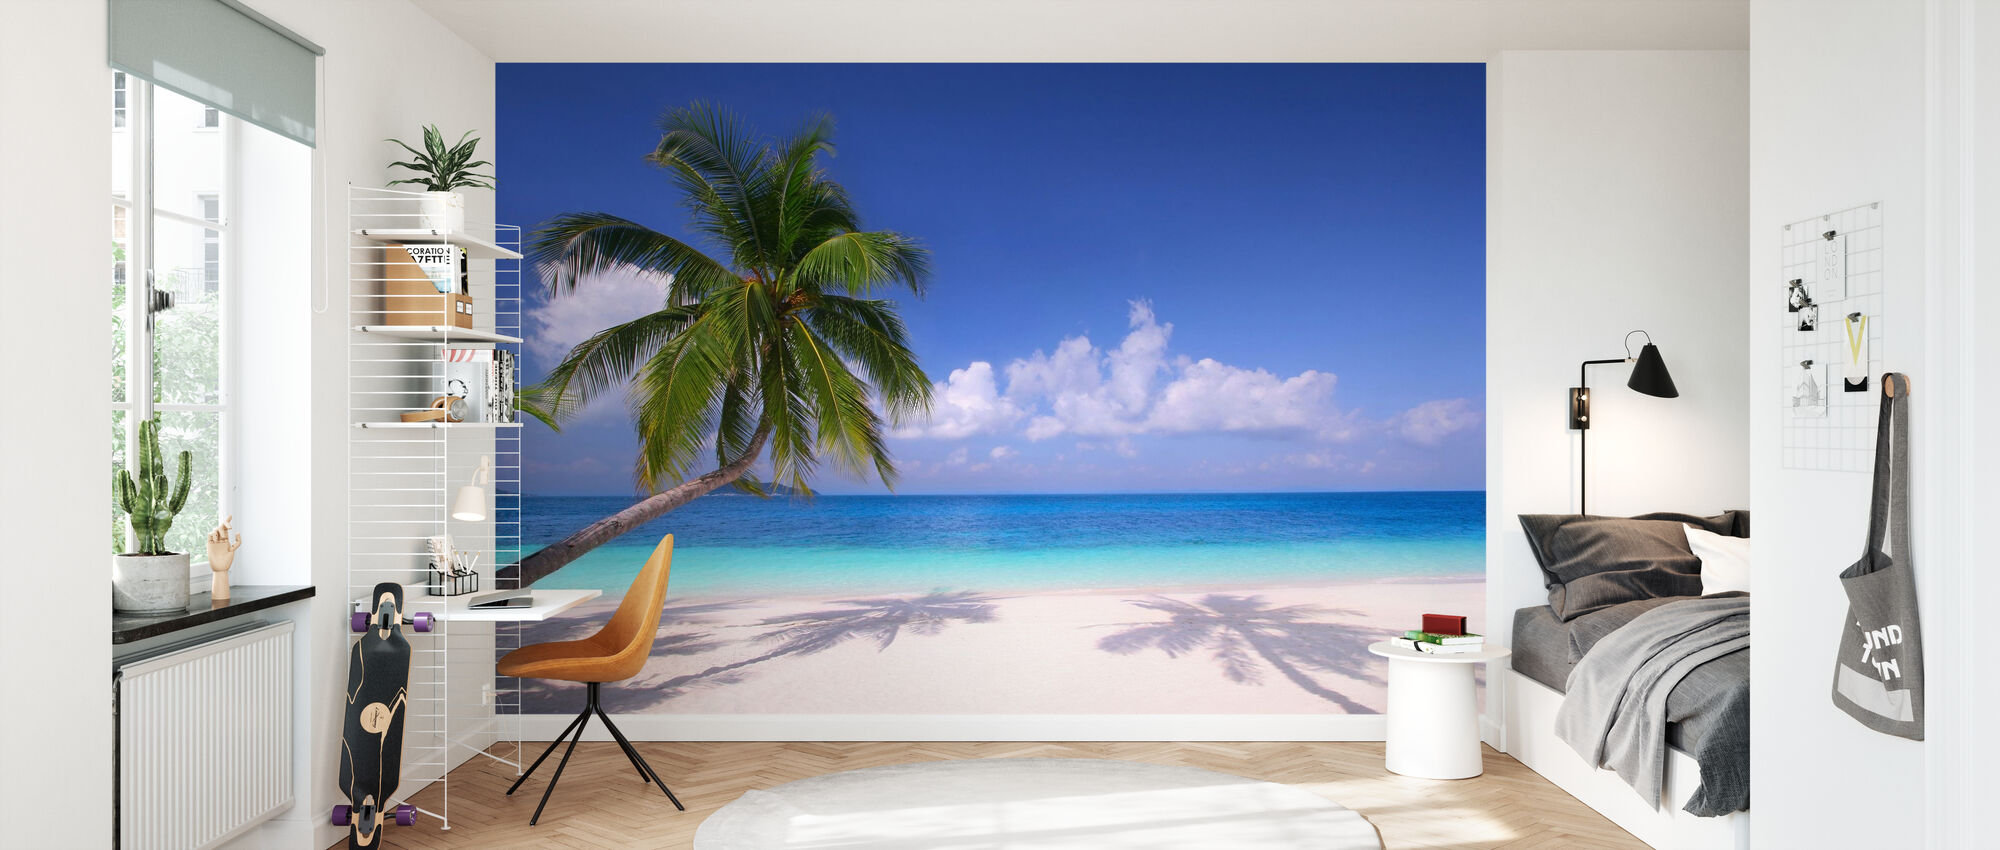 Island Paradise - Wallpaper - Kids Room